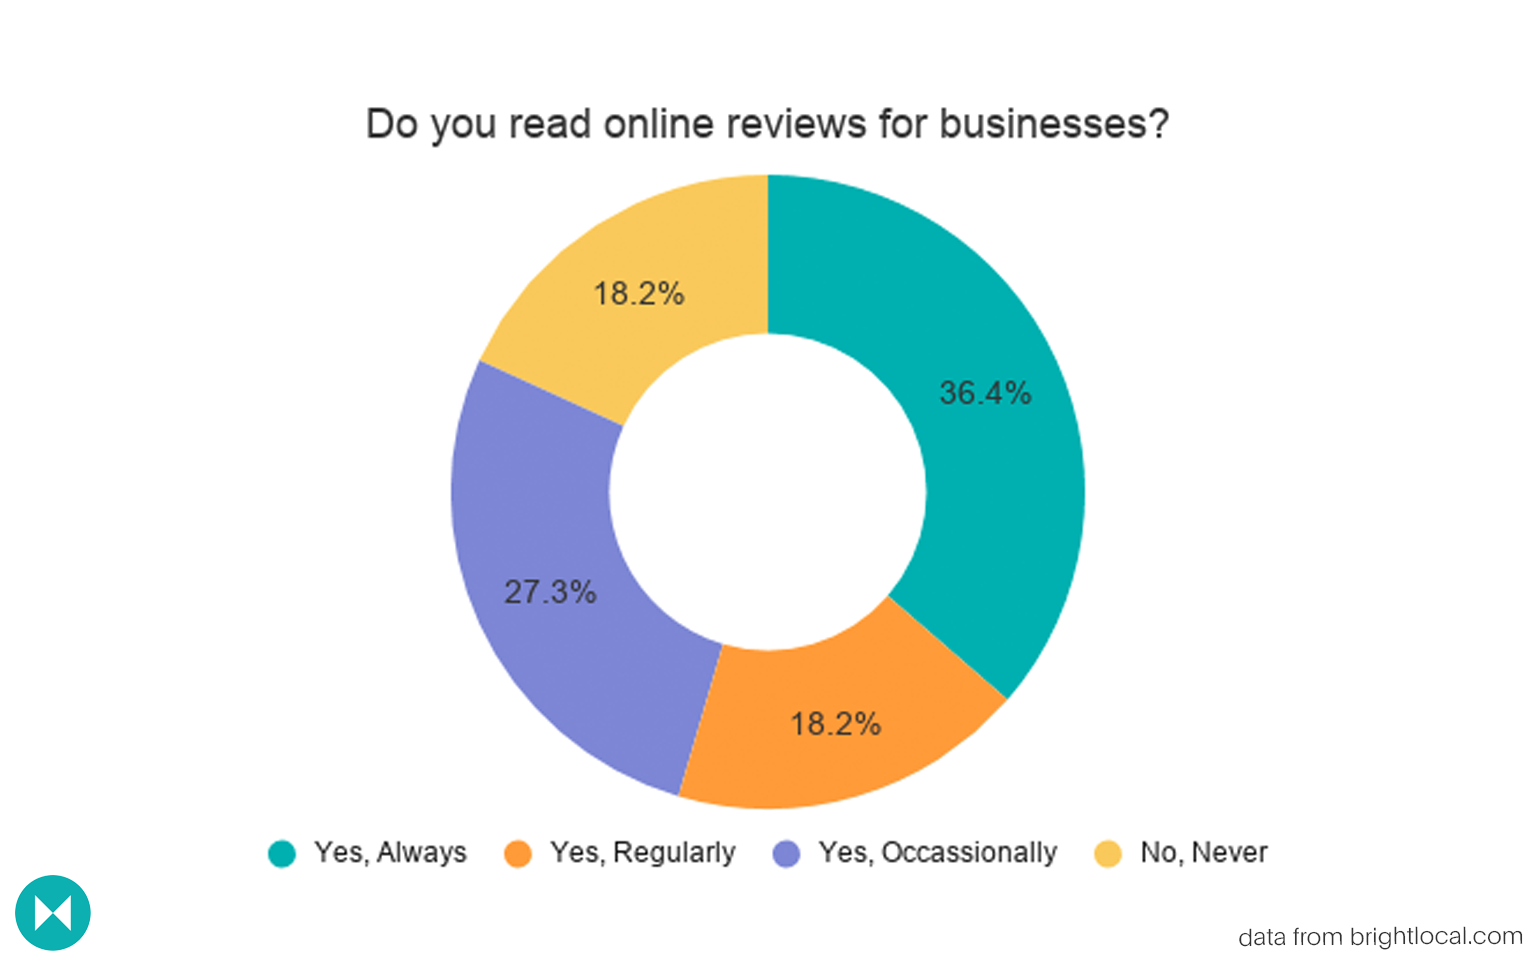 donut graph outlining whether people read online reviews for businesses